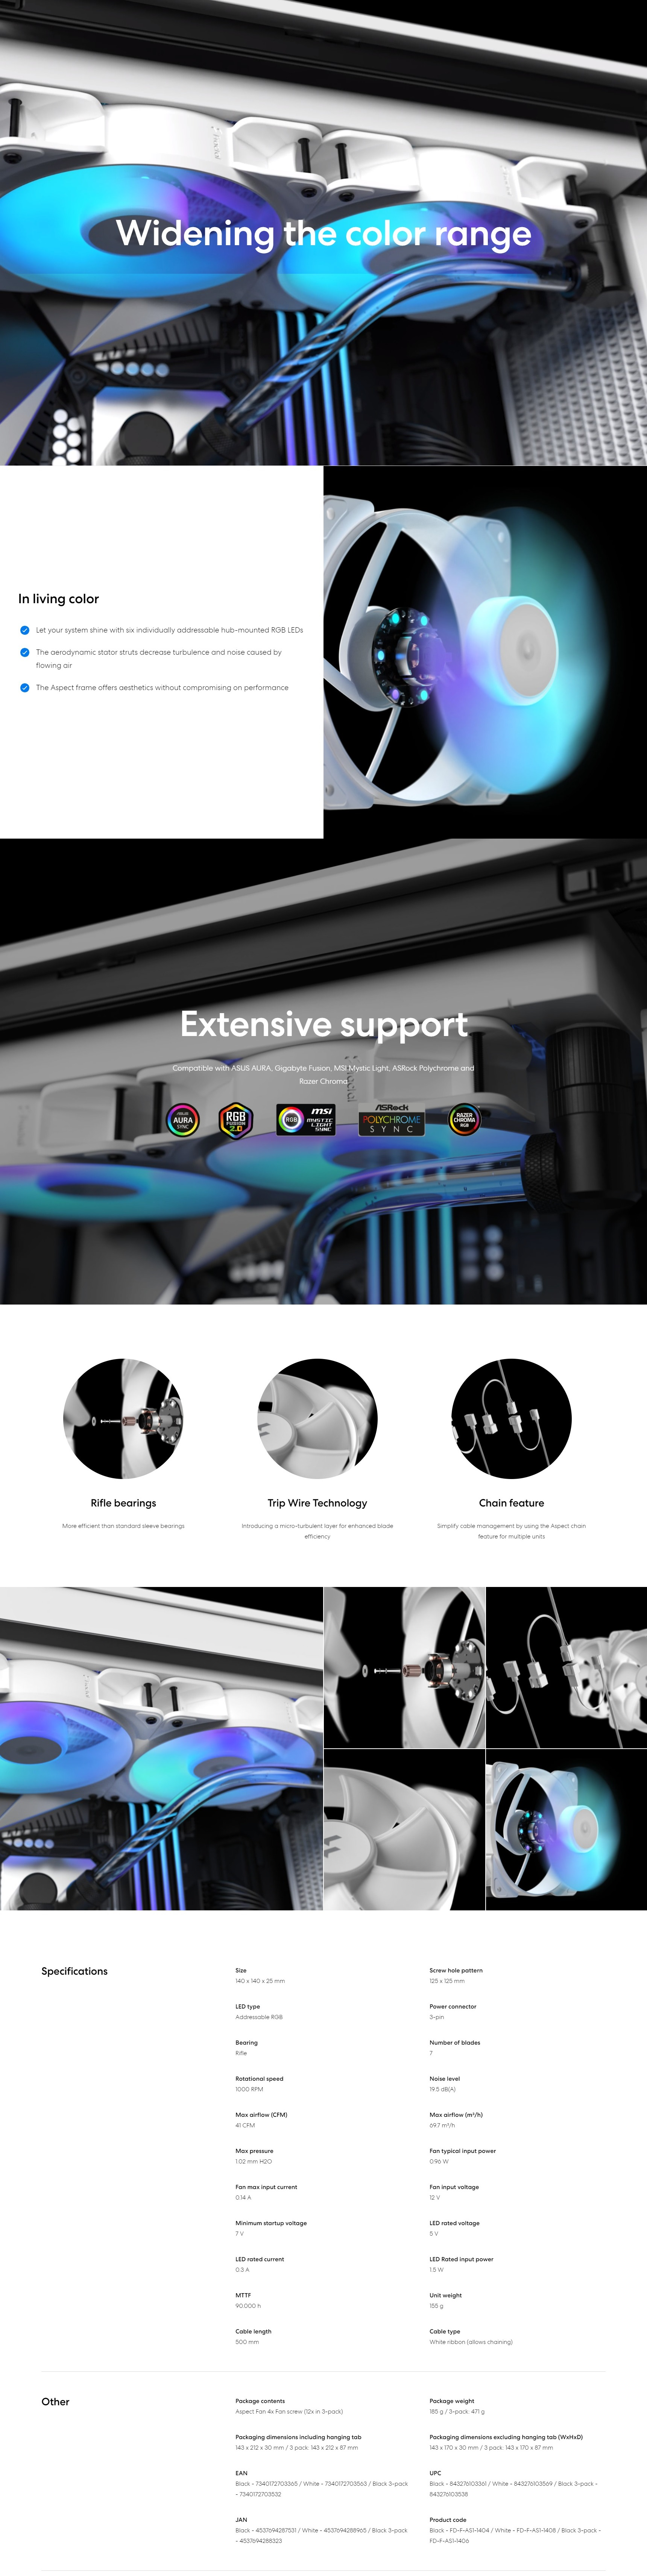 A large marketing image providing additional information about the product Fractal Design Aspect 14 RGB 140mm Fan Black - Additional alt info not provided